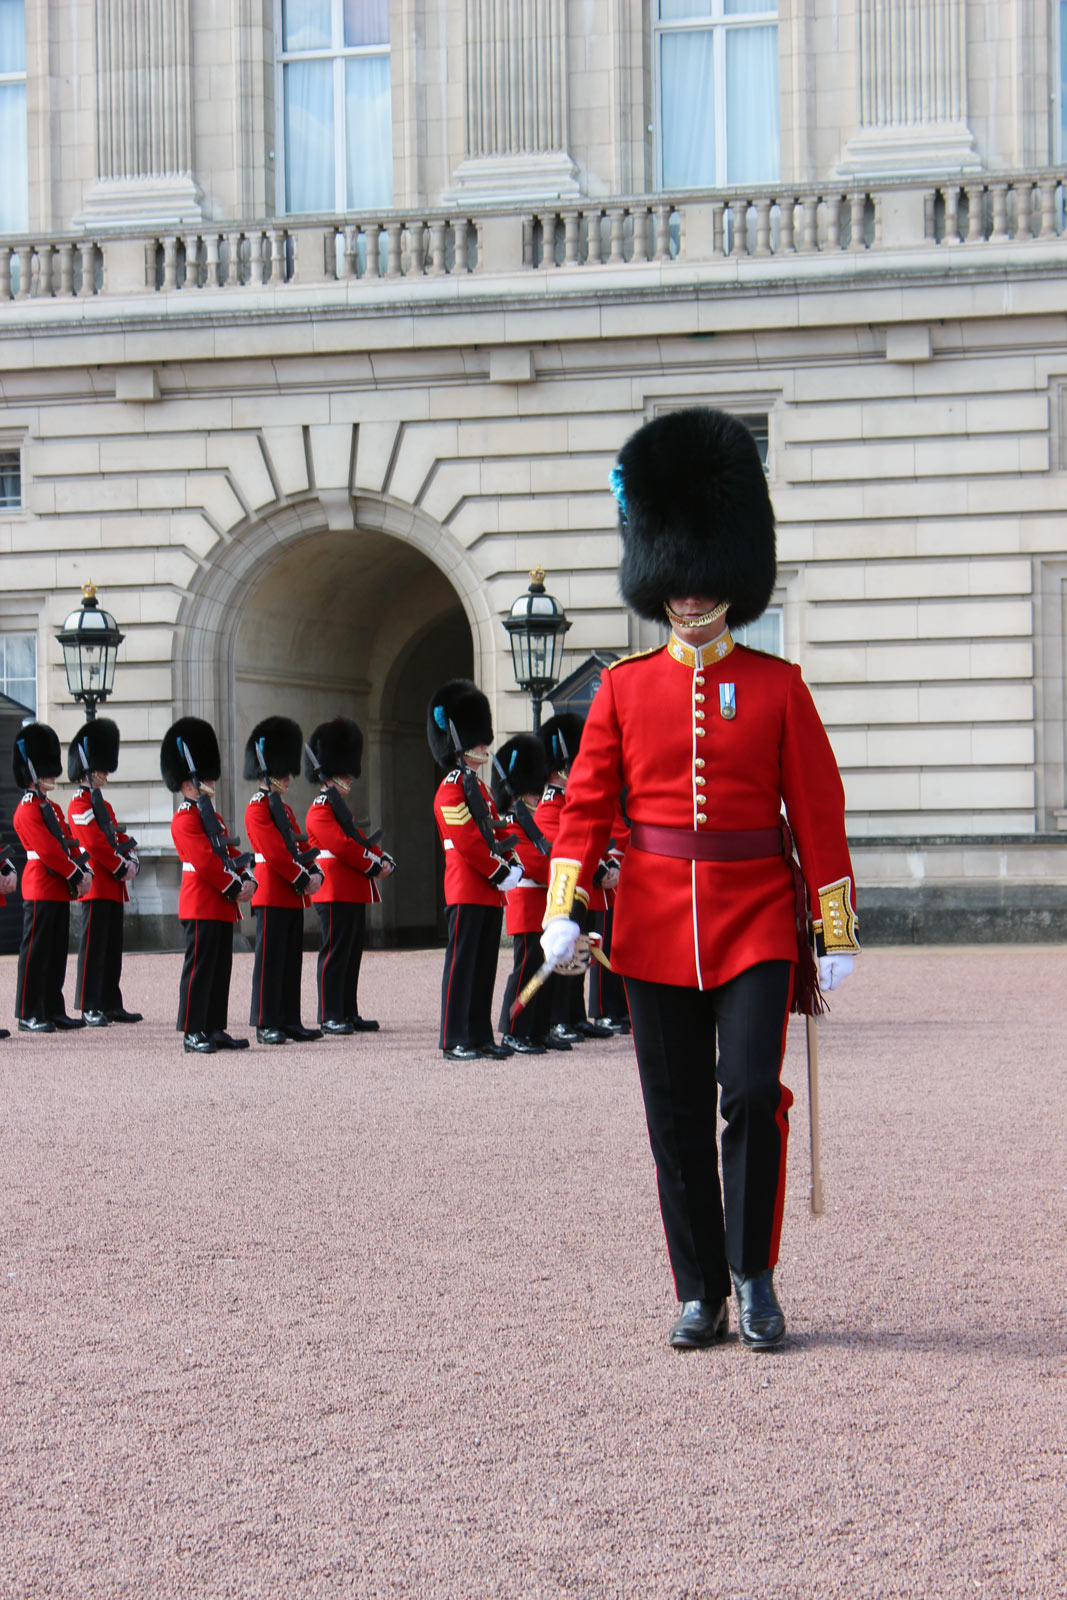 A Wheelchair User's Guide to the Changing of the Guard